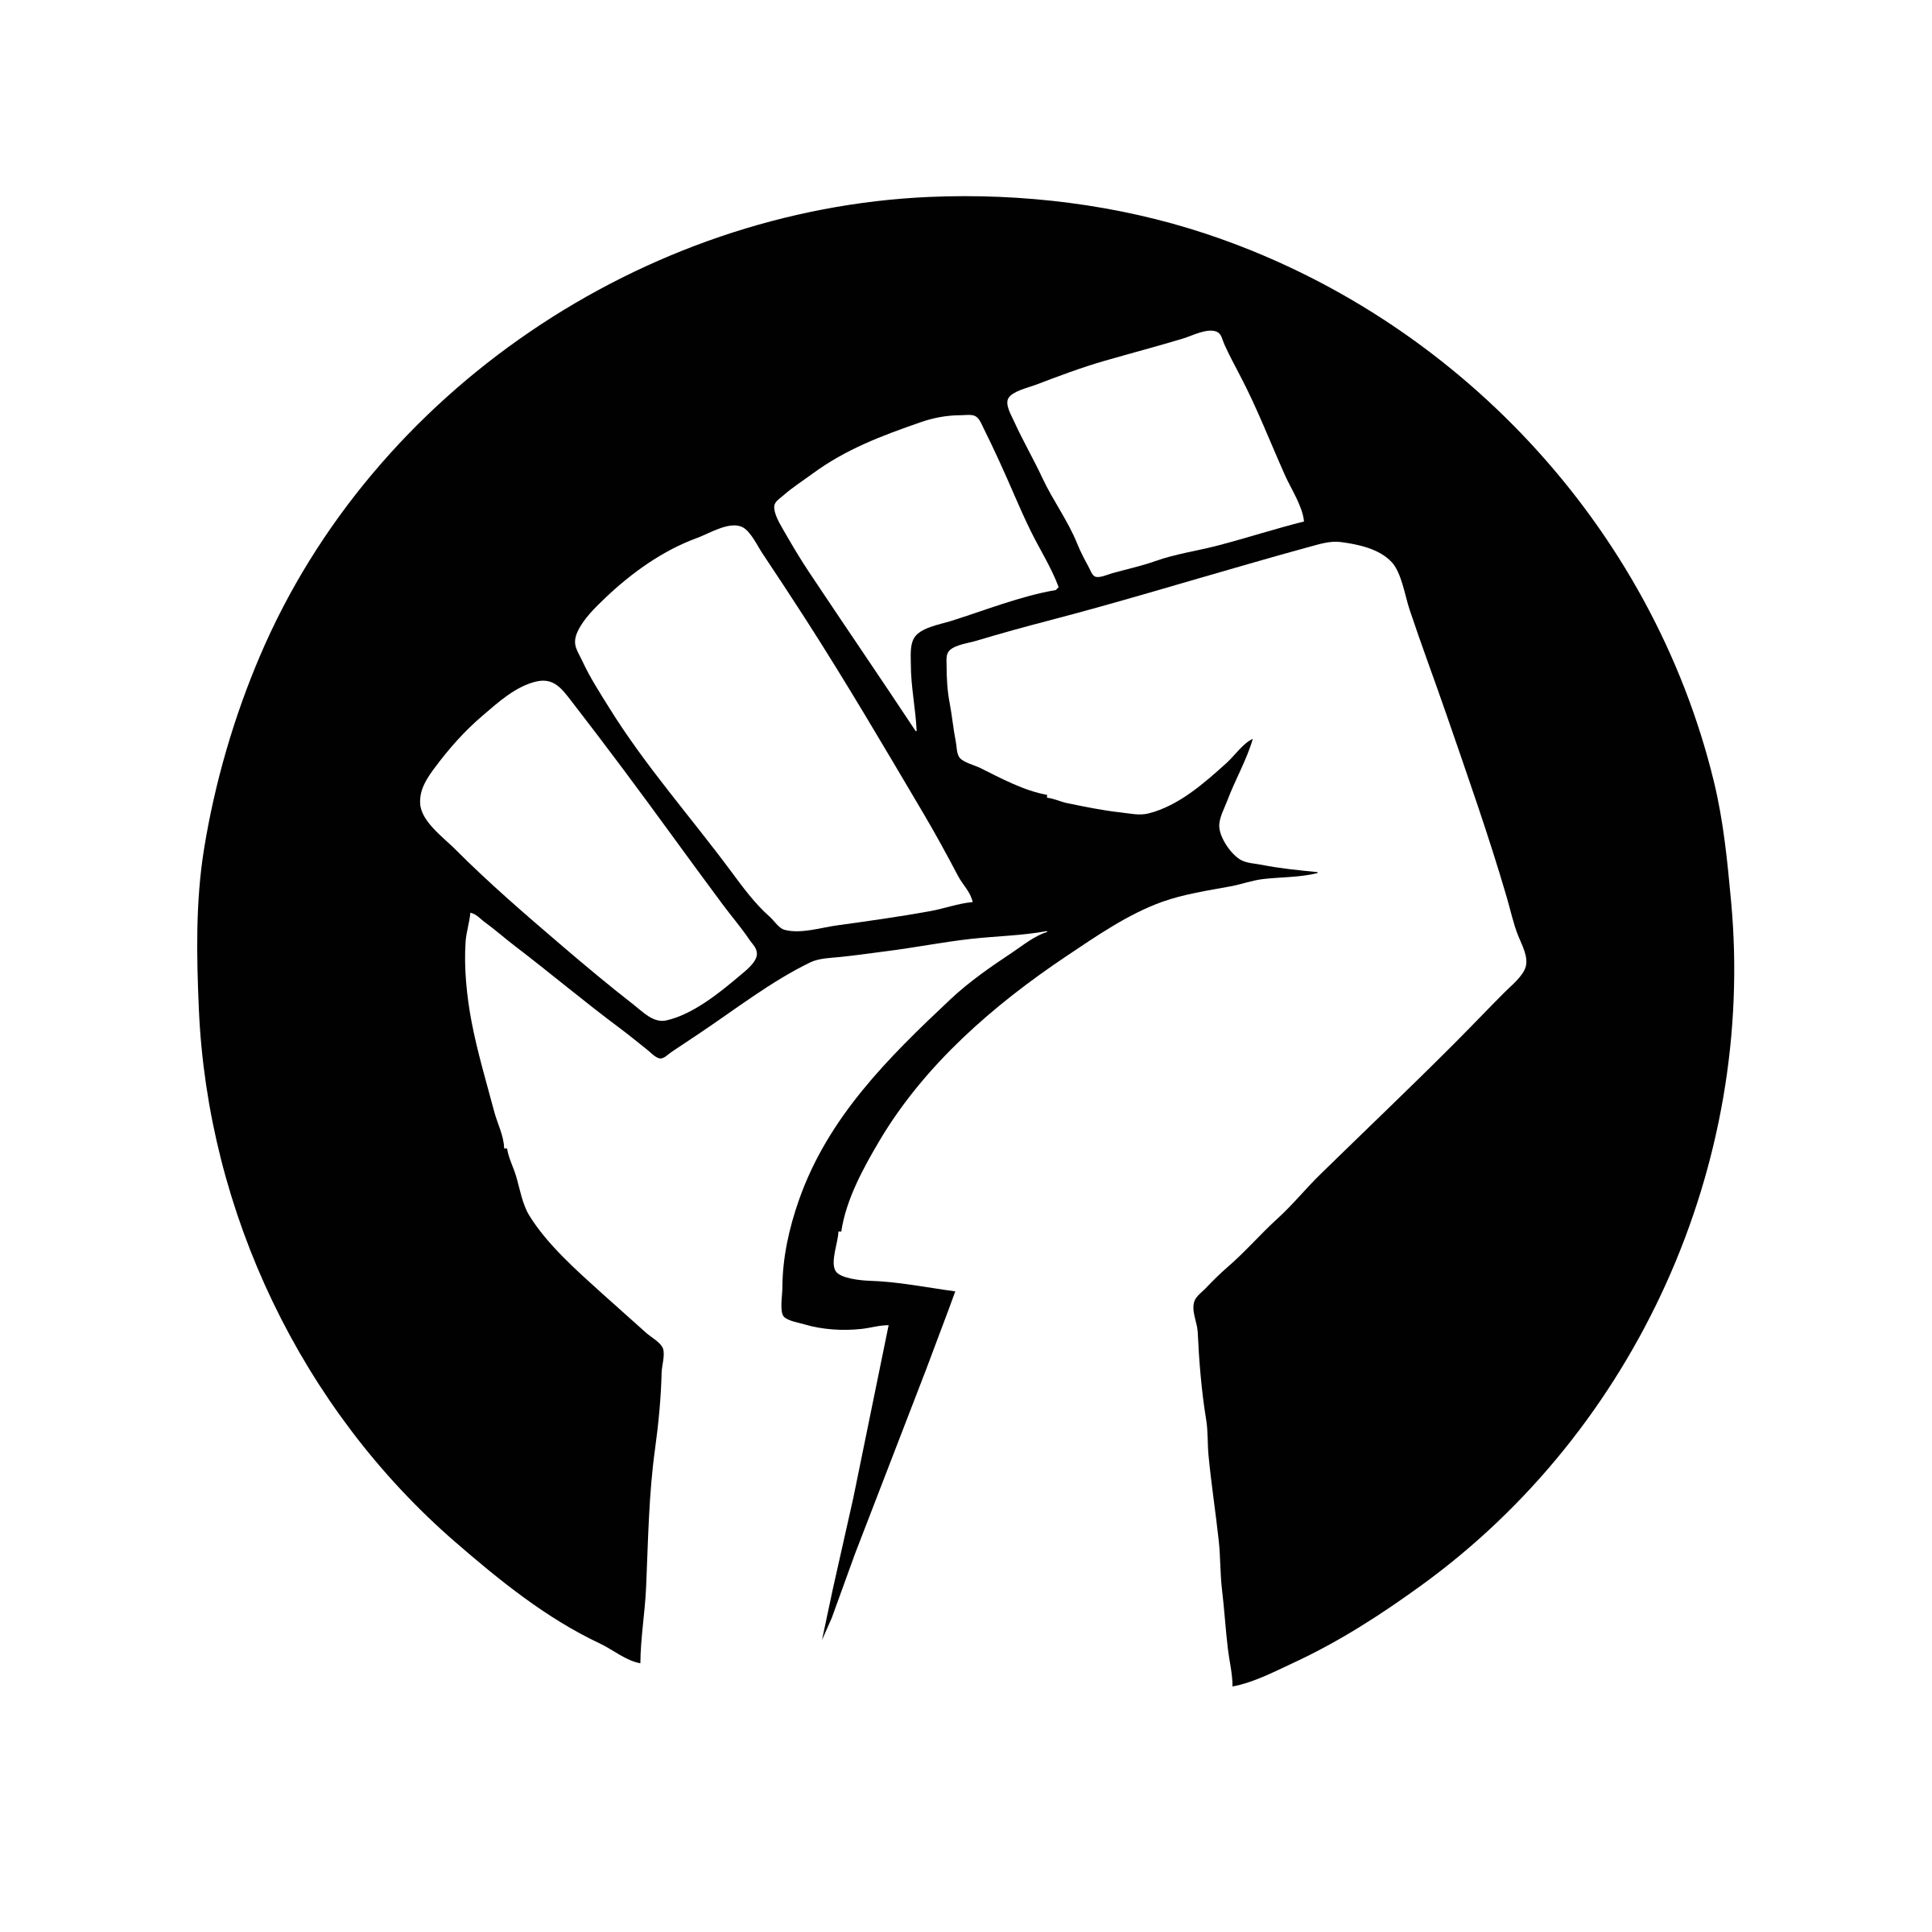 Free White Power Cliparts, Download Free Clip Art, Free Clip.